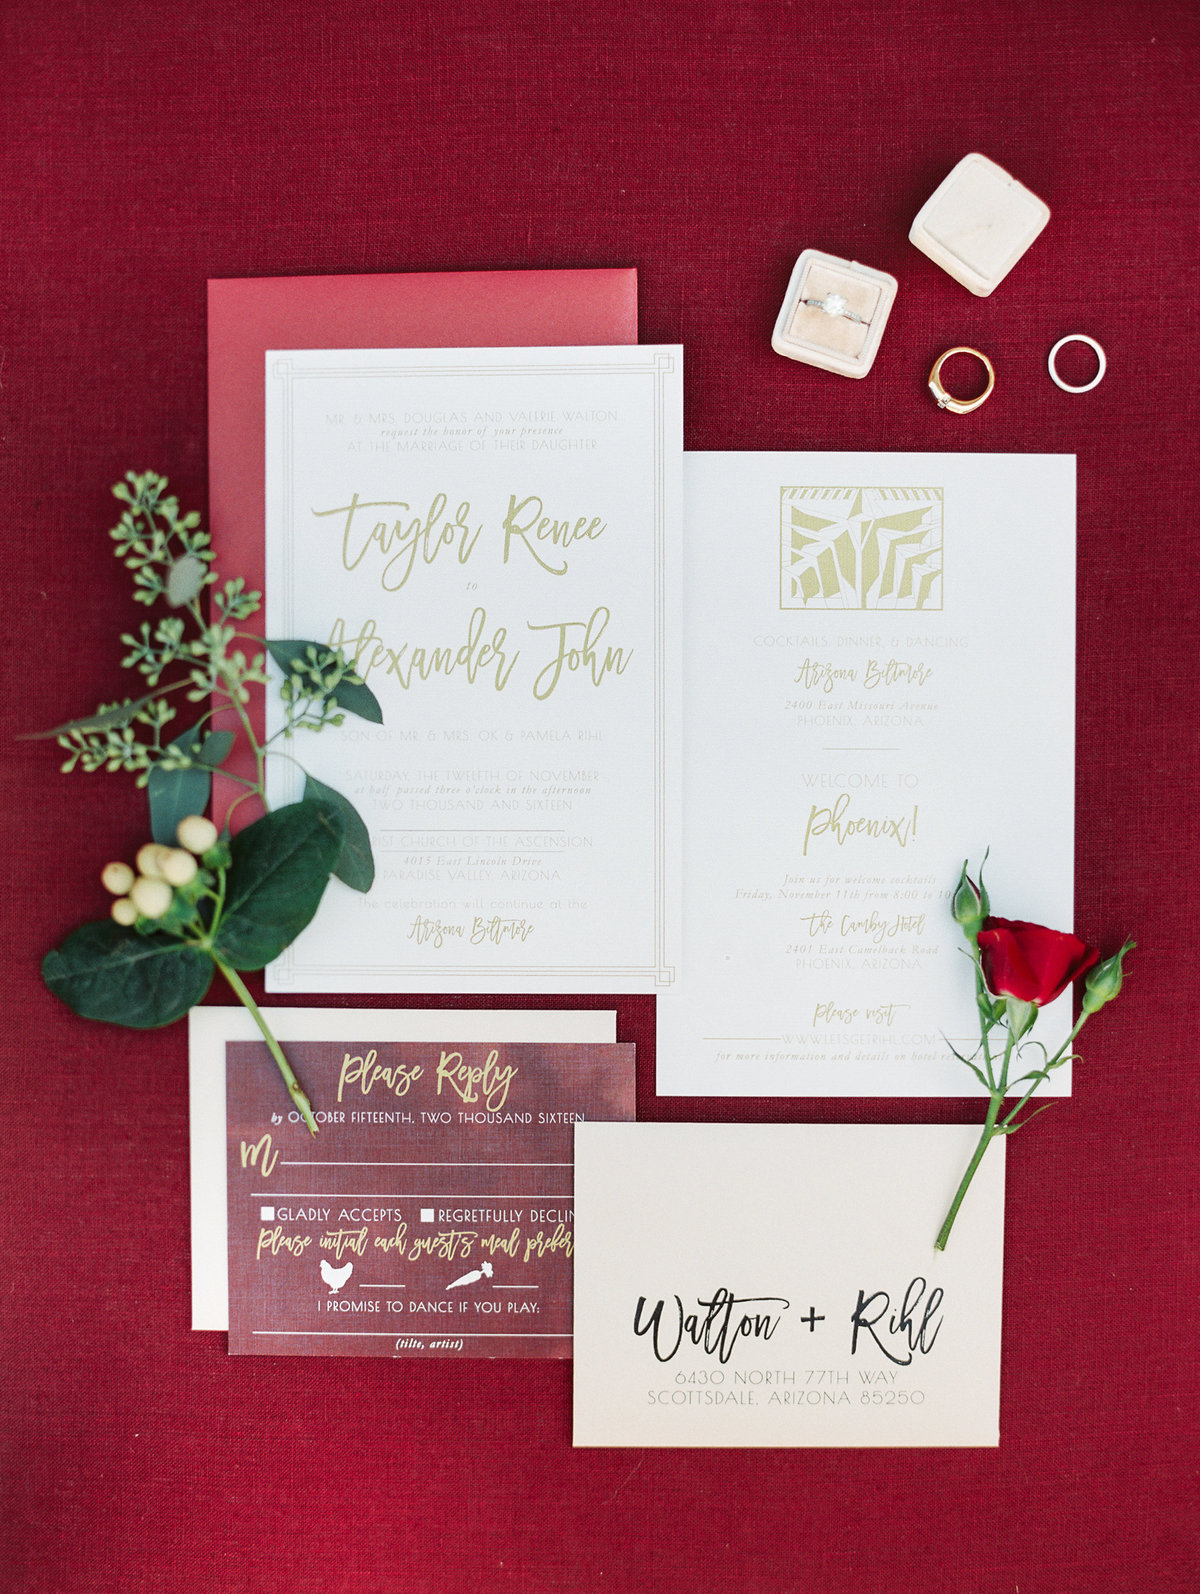 Wedding Planner and Event Design Company in Phoenix, AZ